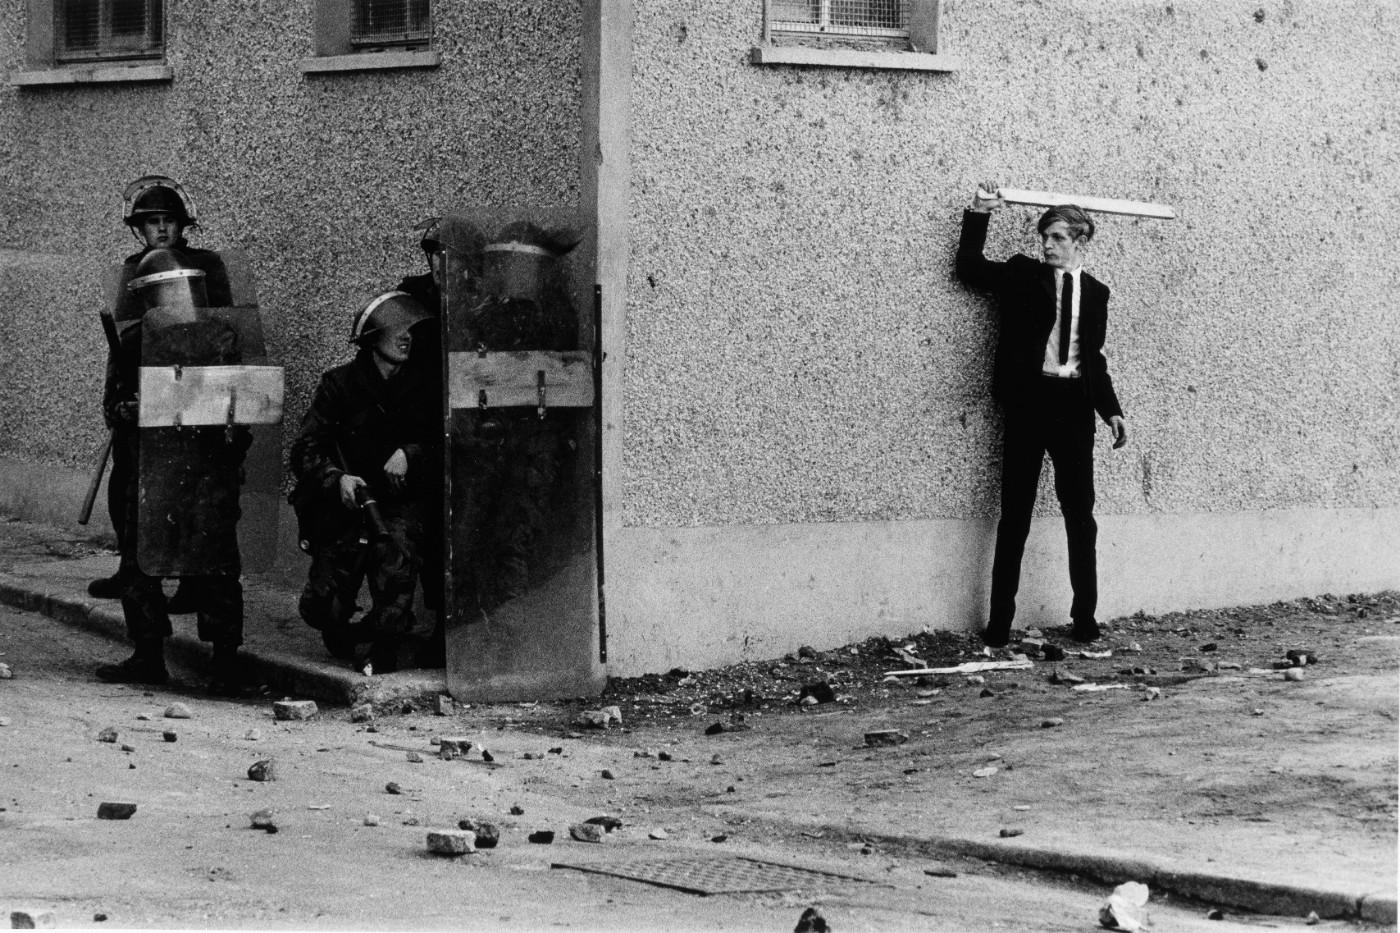 Don McCullin, Northern Ireland, The Bogside, Londonderry, 1971